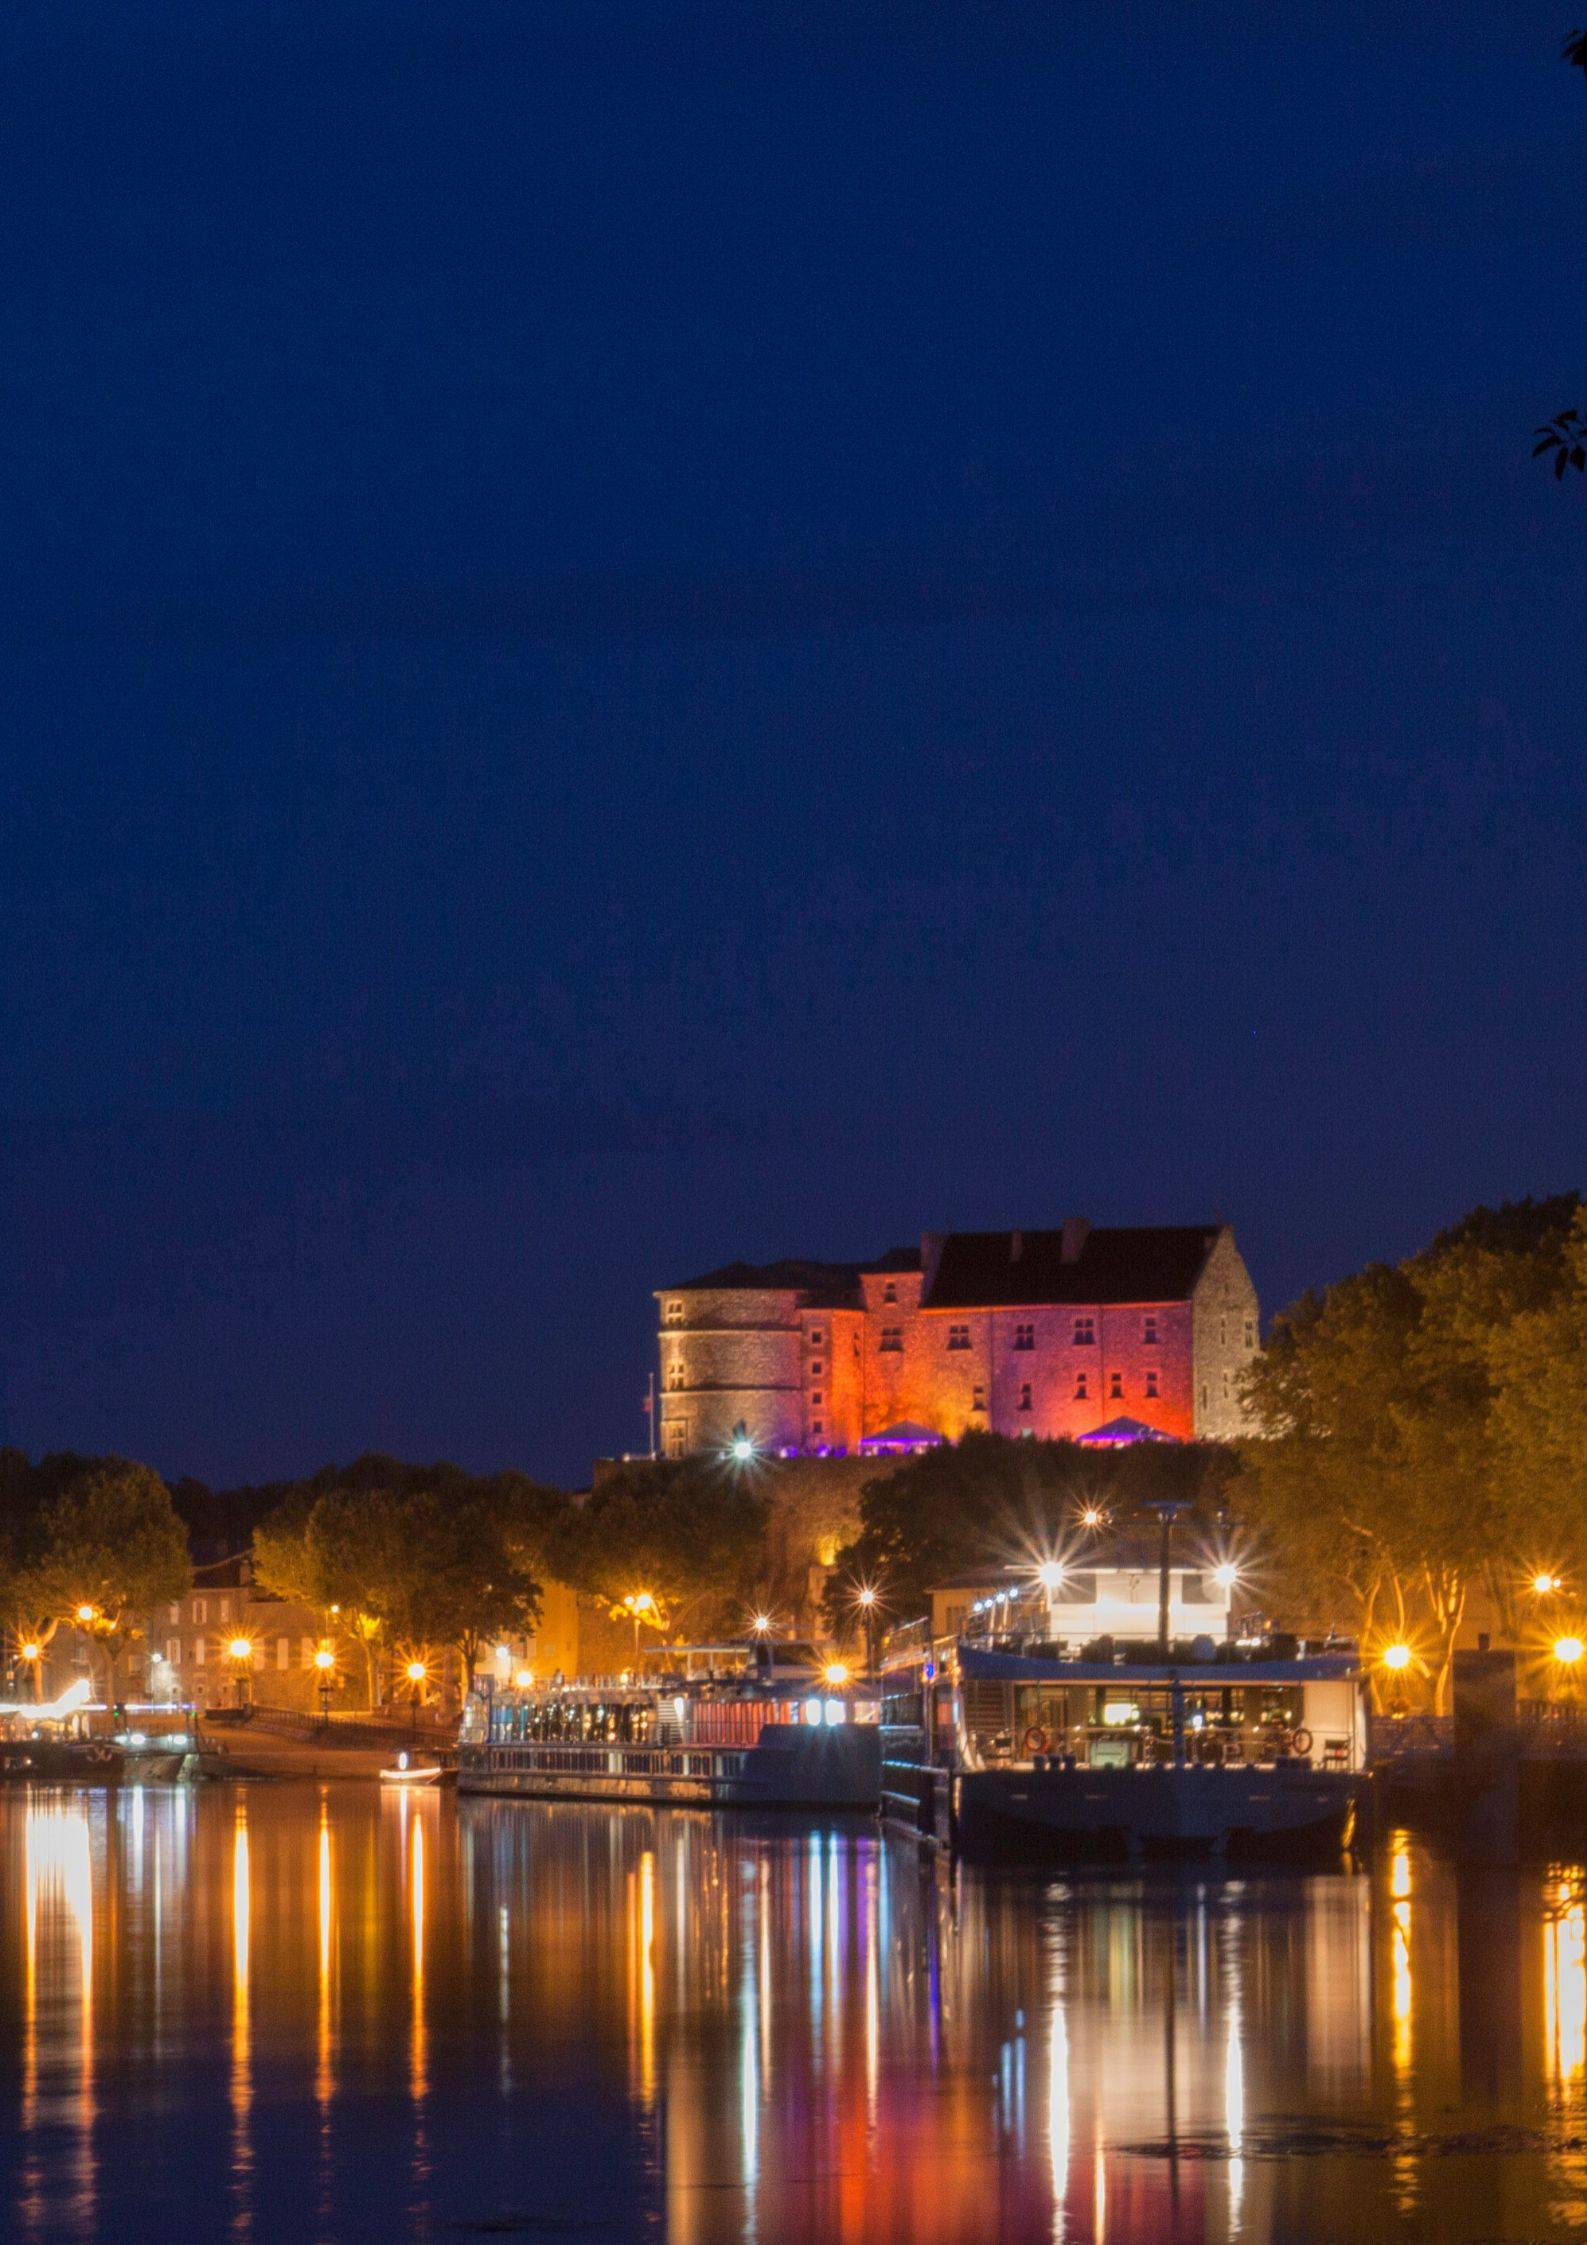 Le château de Tournon by night